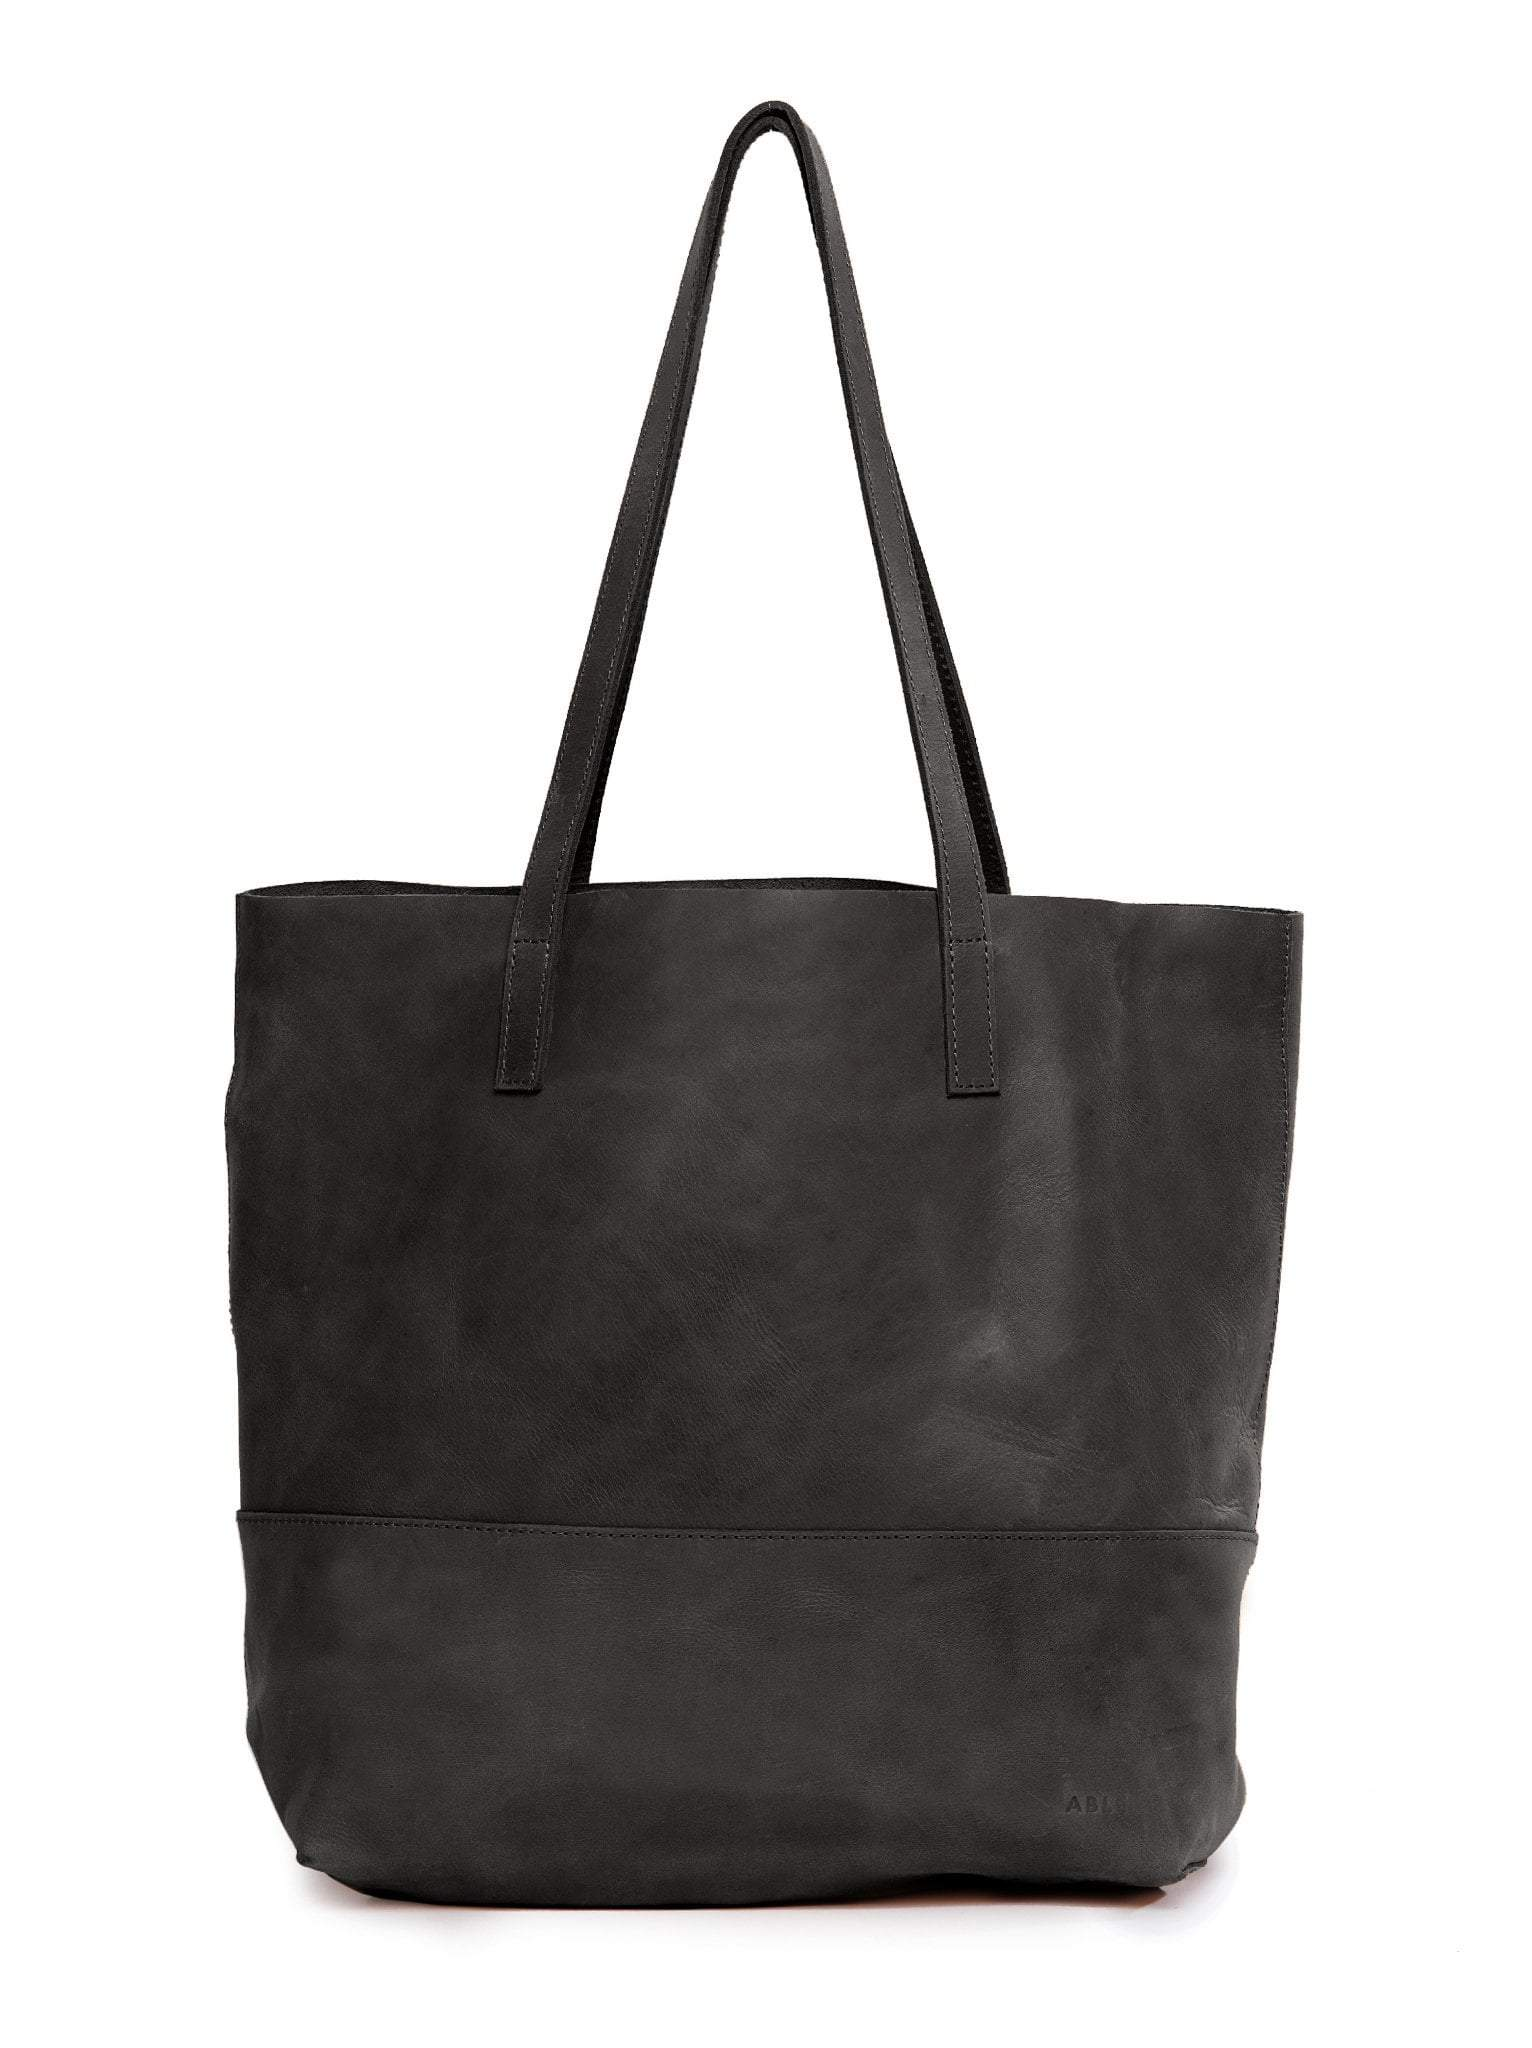 ABLE MAMUYE CLASSIC TOTE - Penny Lane Boutique